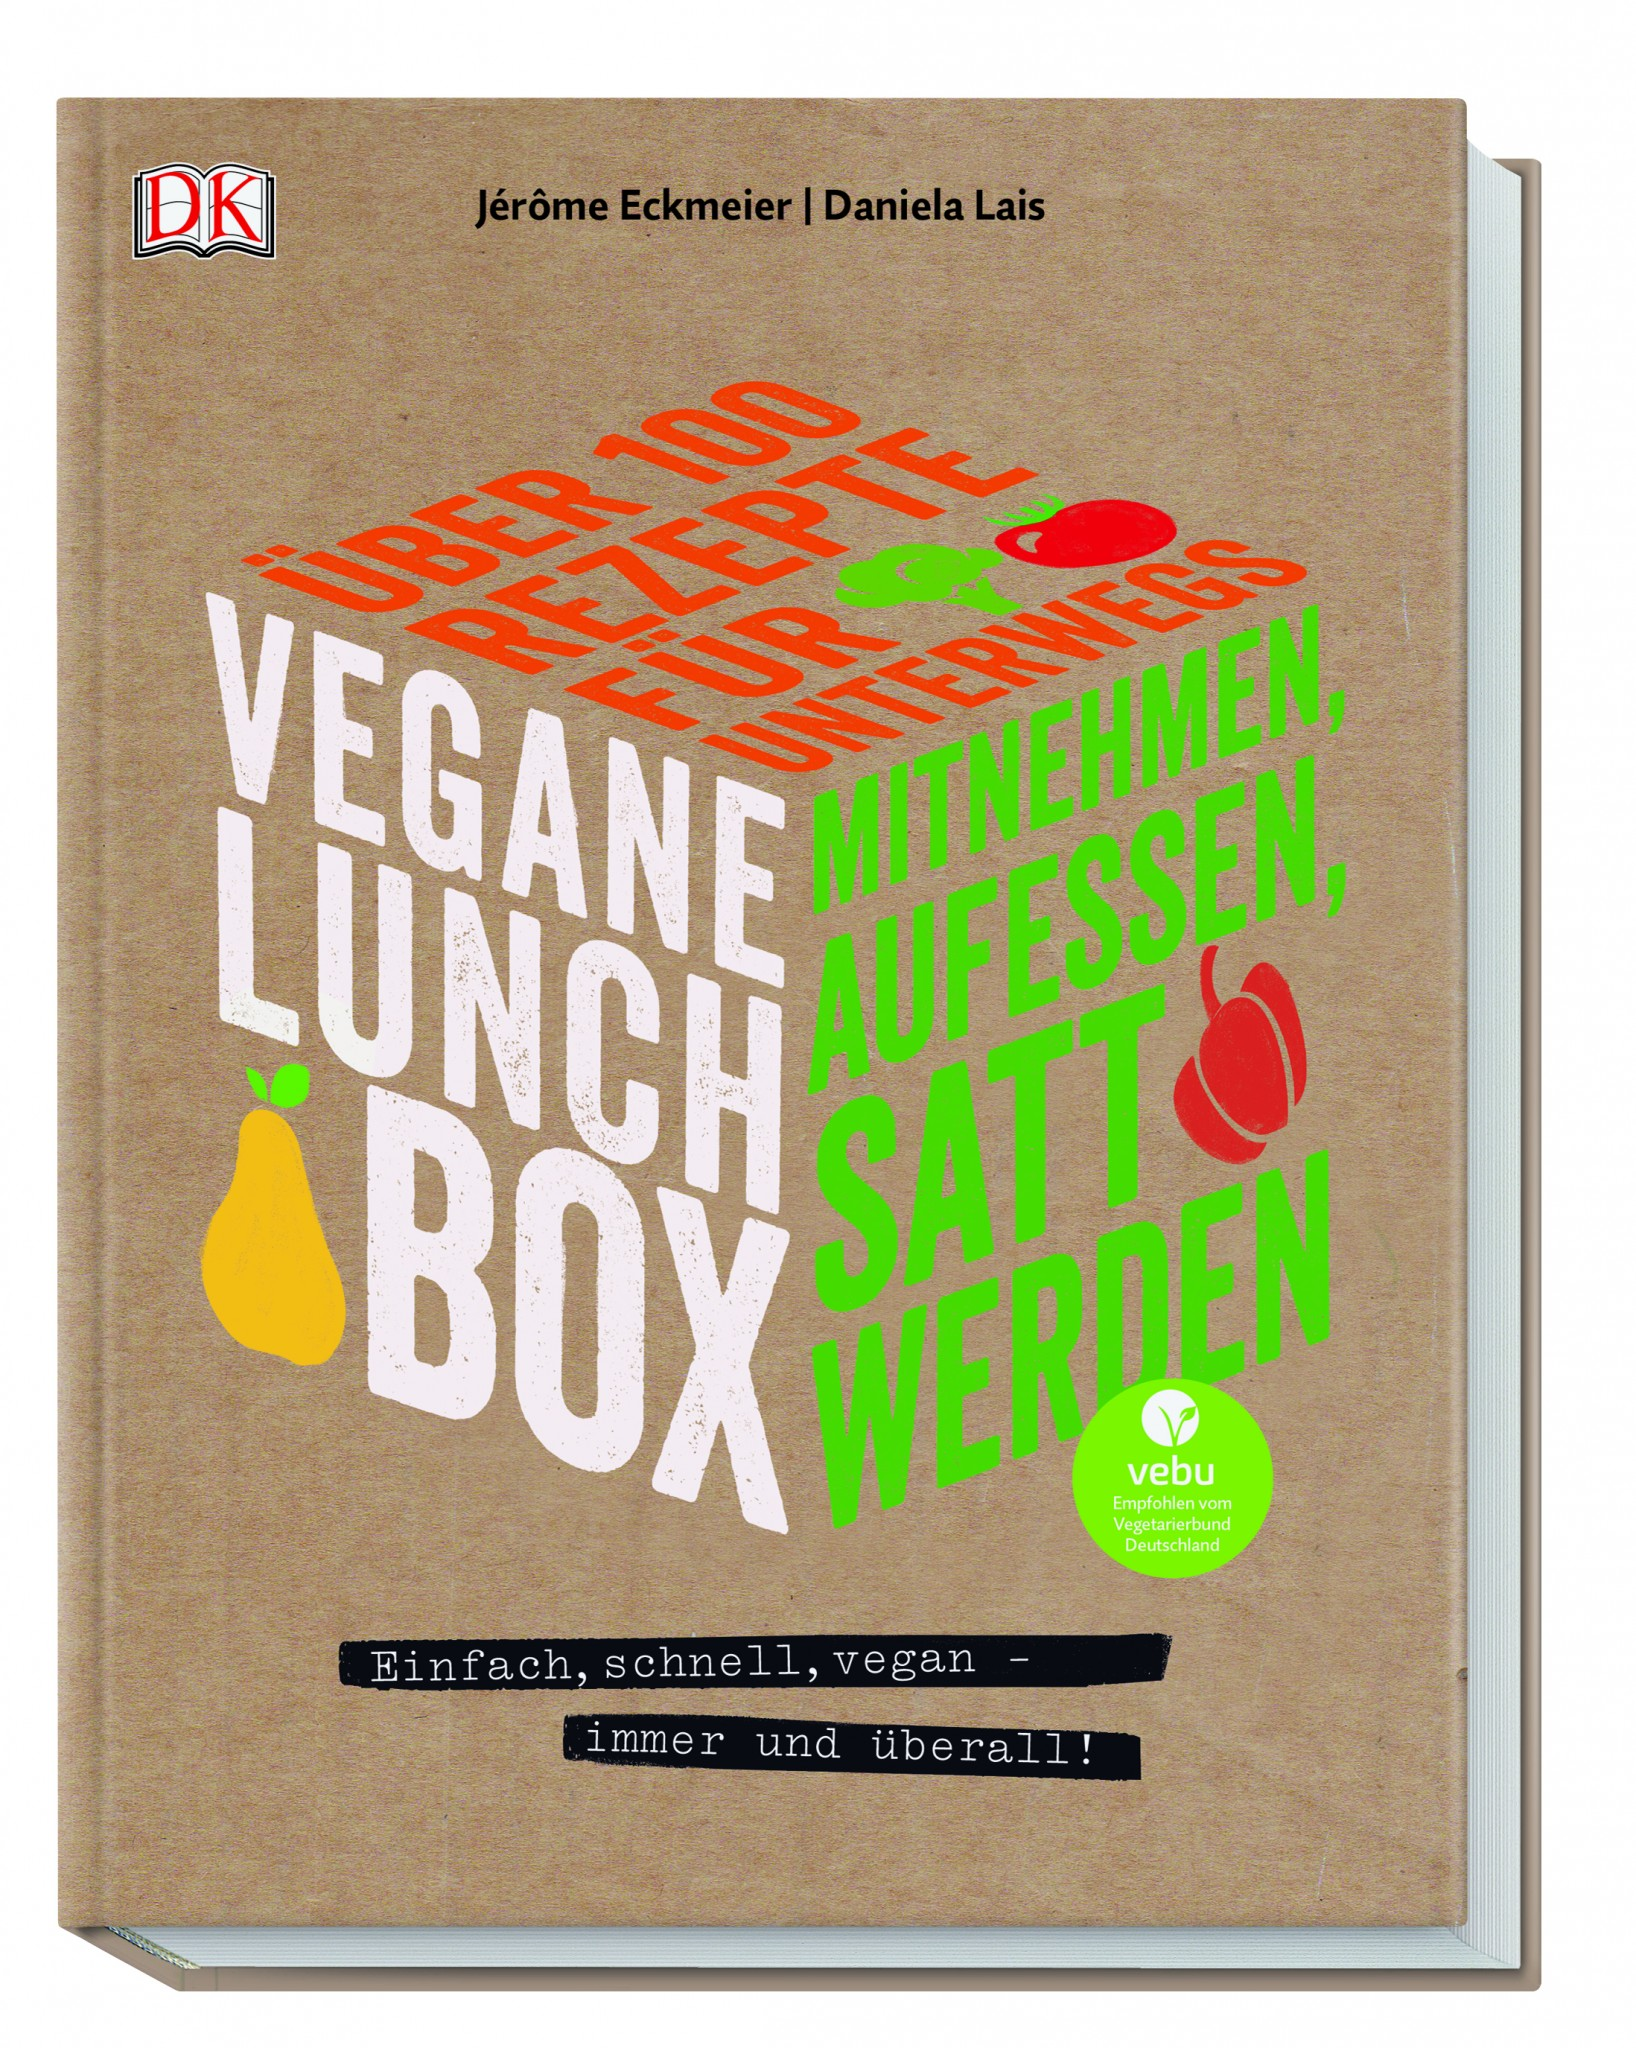 https://proveg.com/de/wp-content/uploads/sites/5/2018/10/Vegane-Lunchbox.jpg